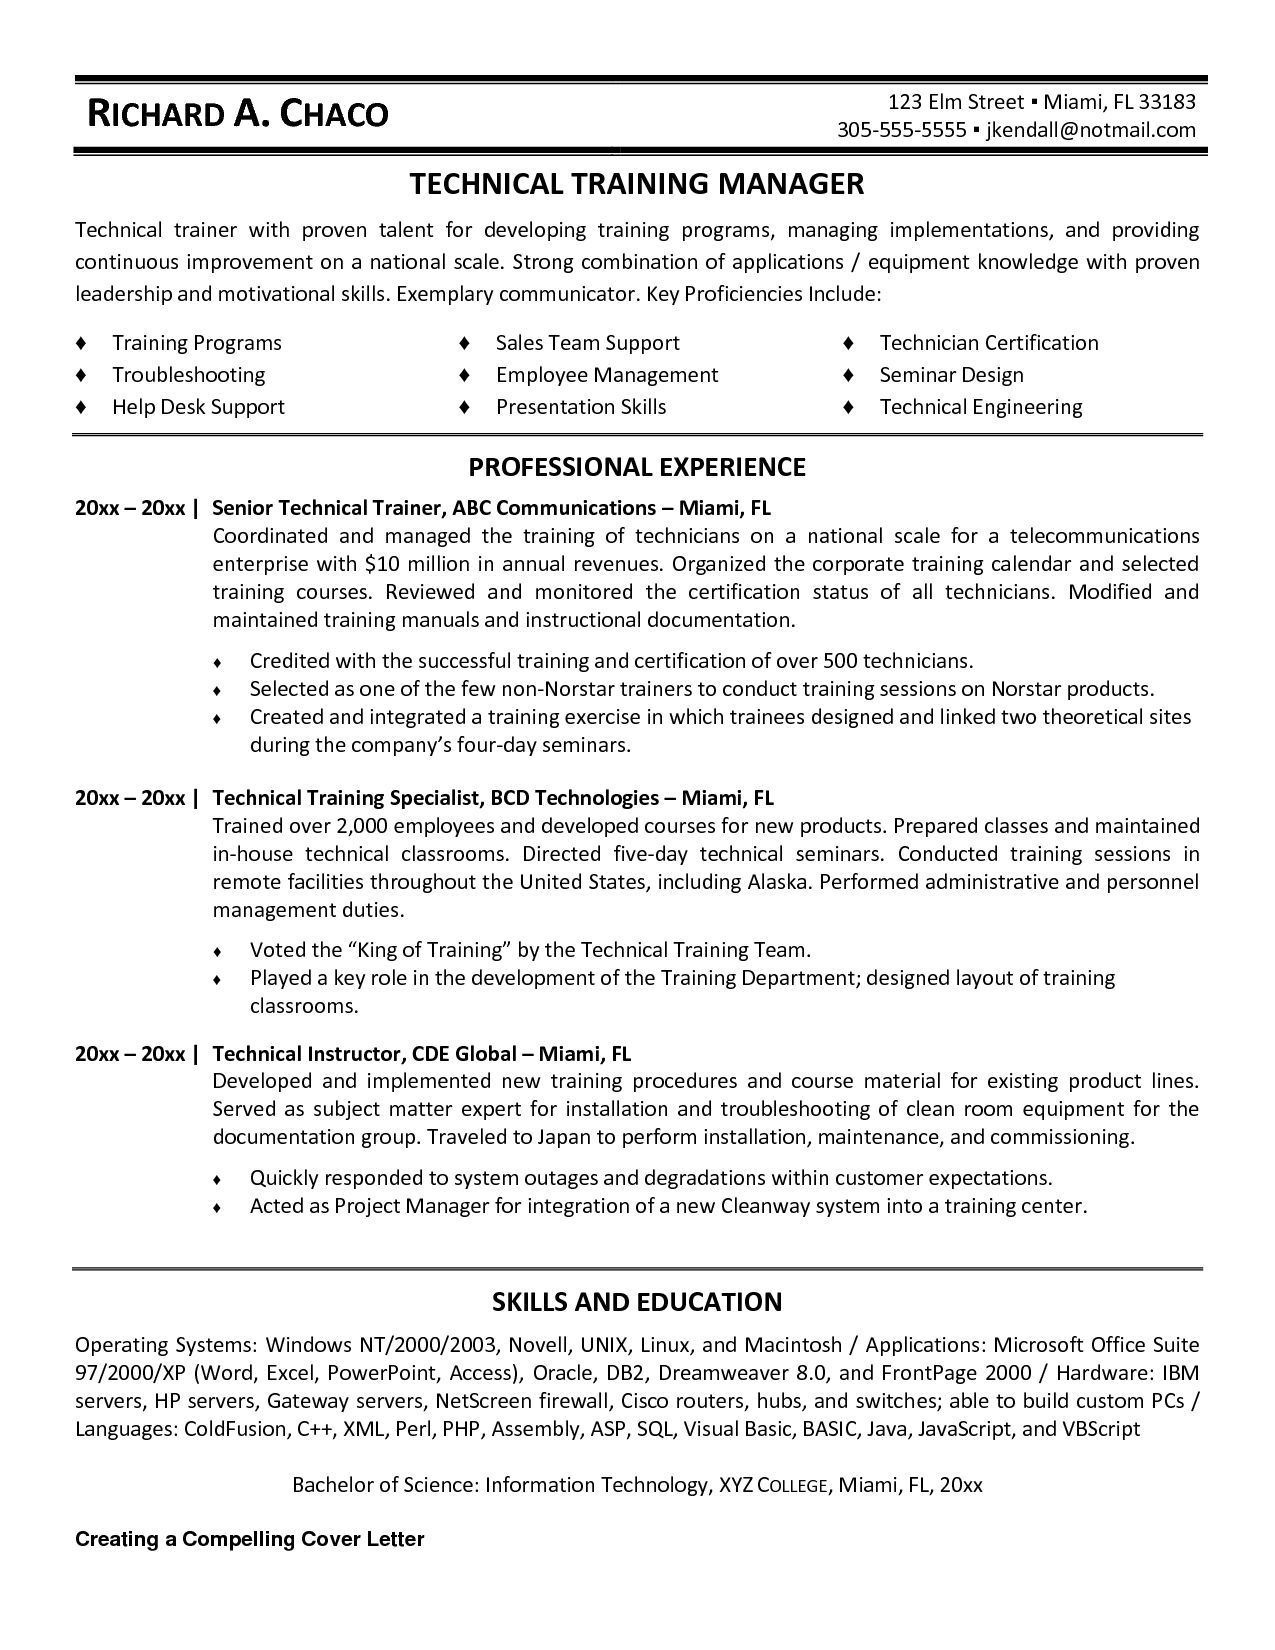 instructor resume examples - Juve.cenitdelacabrera.co